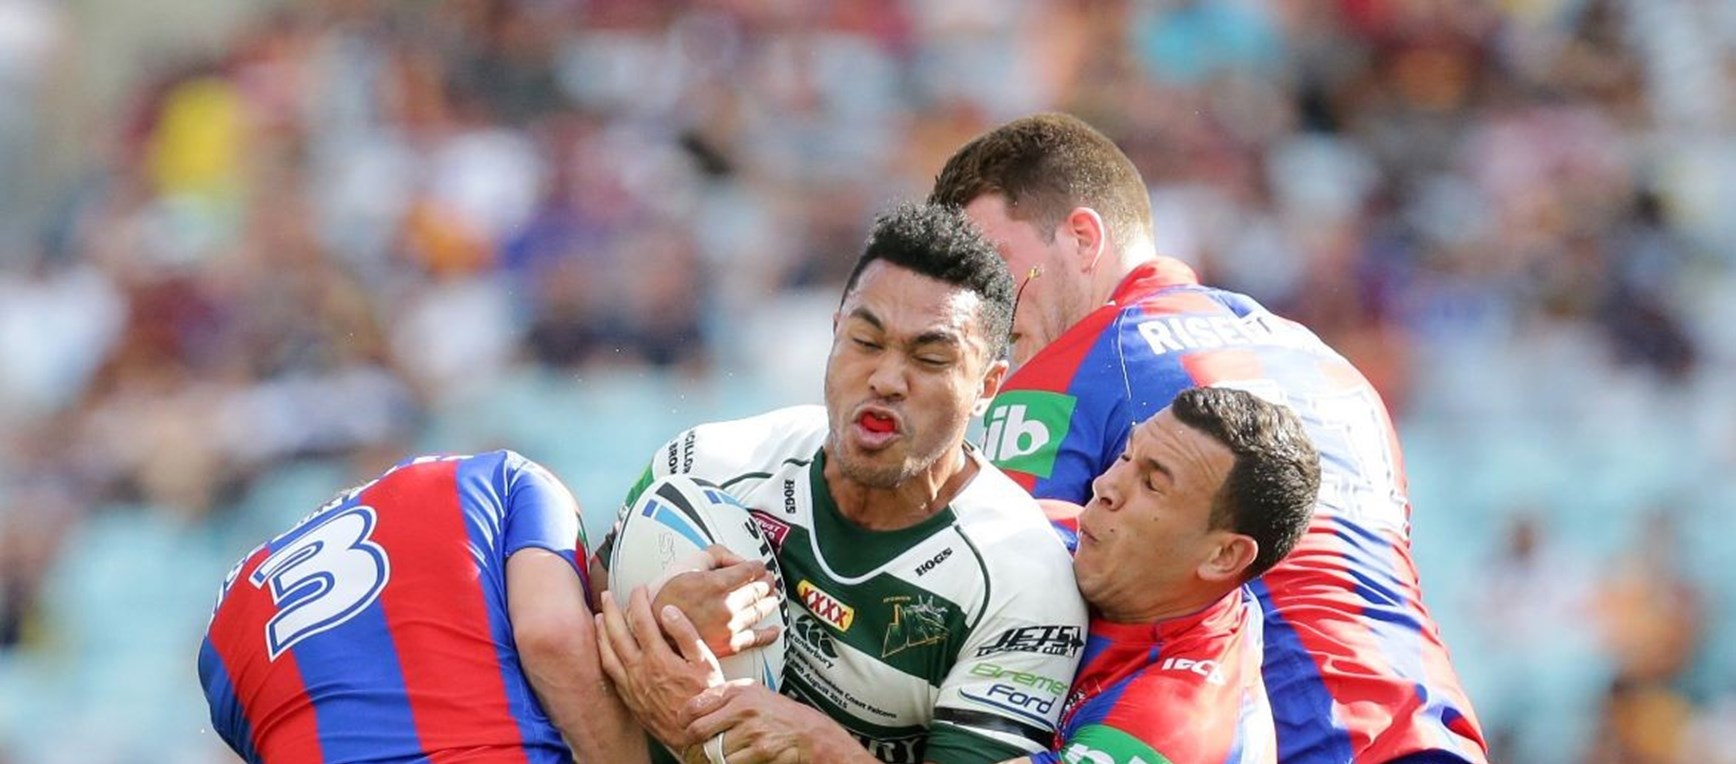 Gallery: Jets V Knights